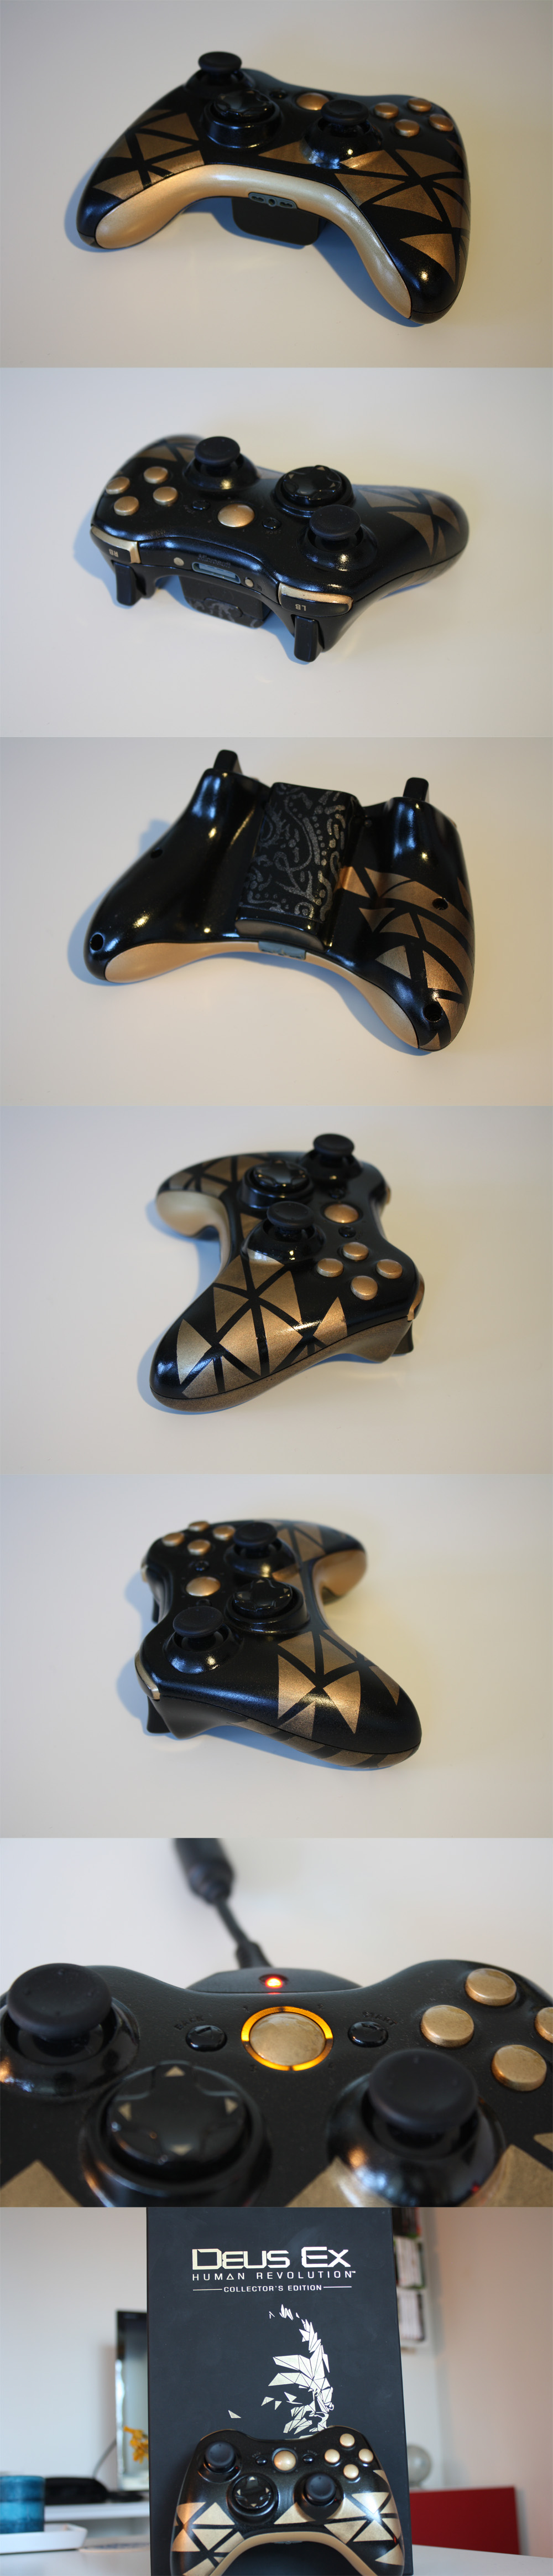 Deus Ex: Human Revolution XBox 360 Controller by The-Real-Seamus